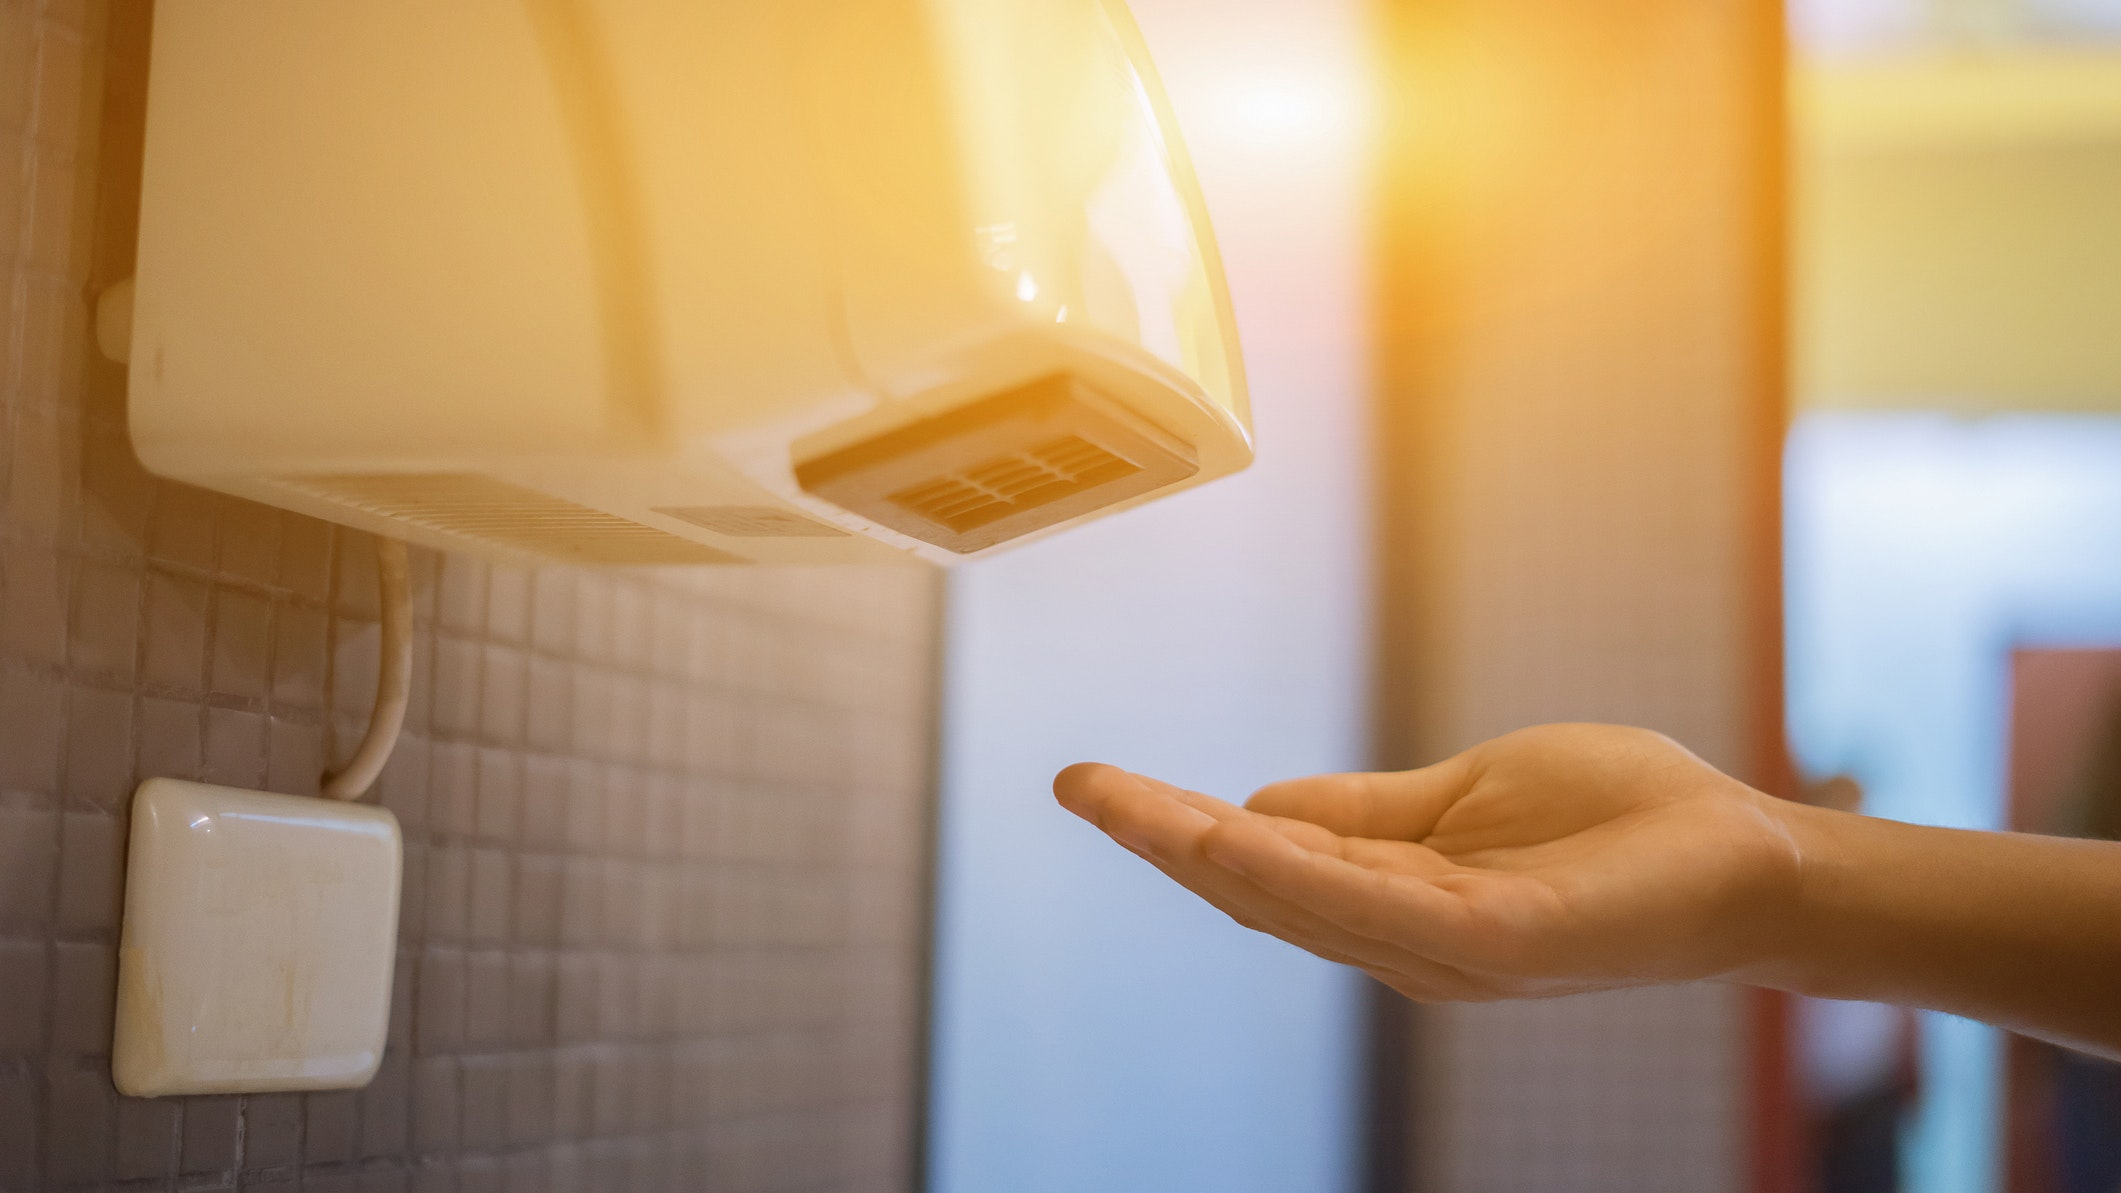 Bathroom Hand Dryers May Be Blowing Bacteria And Faeces All Over You